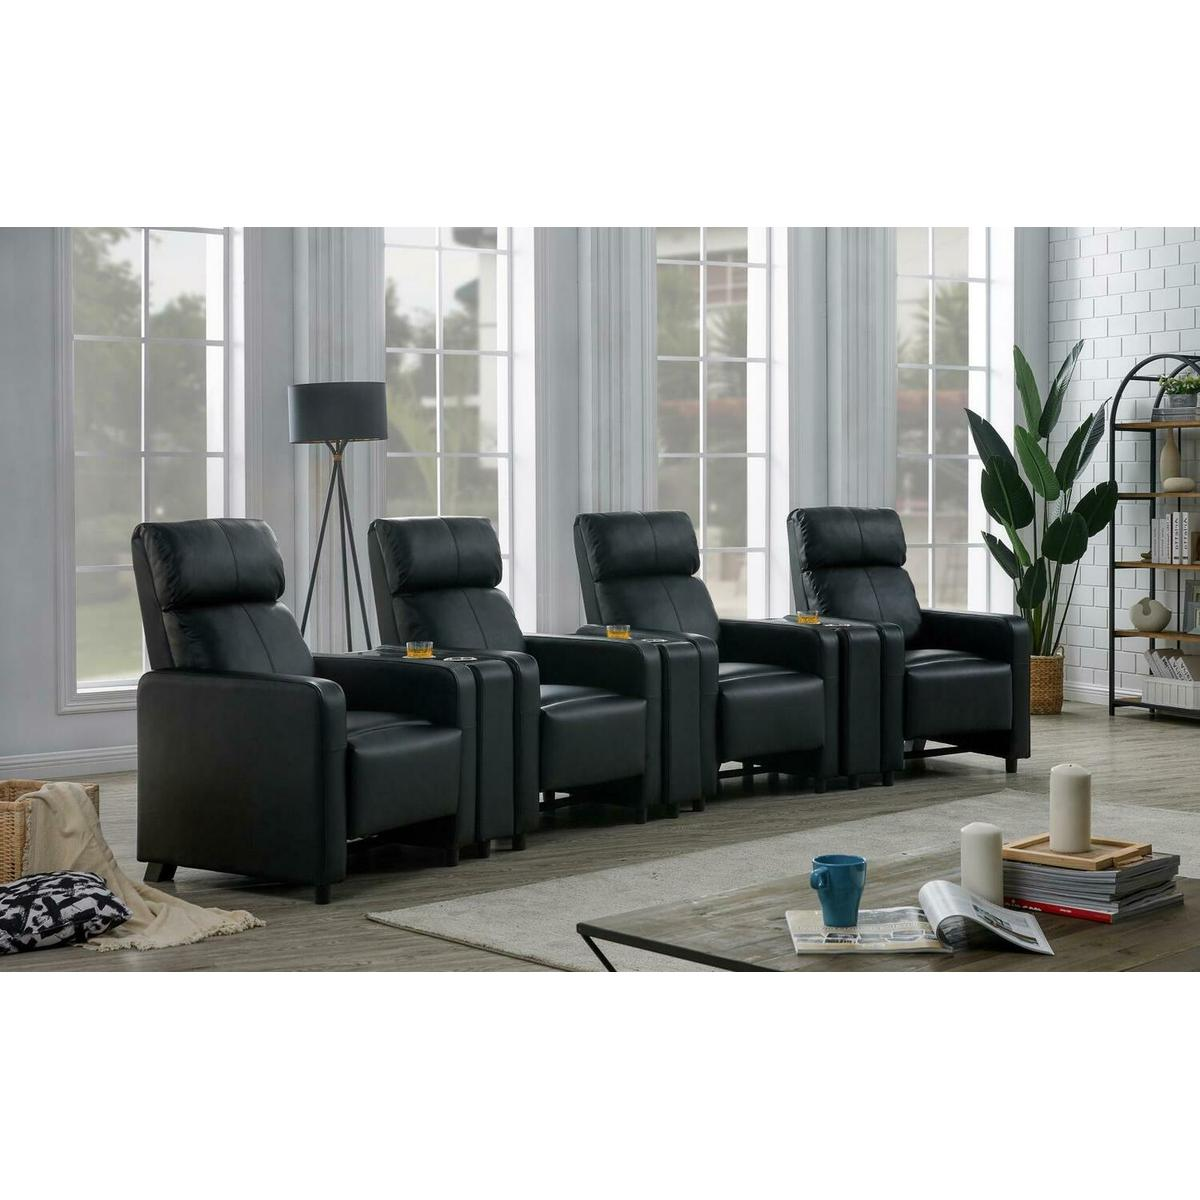 7 PC 4-seater Home Theater